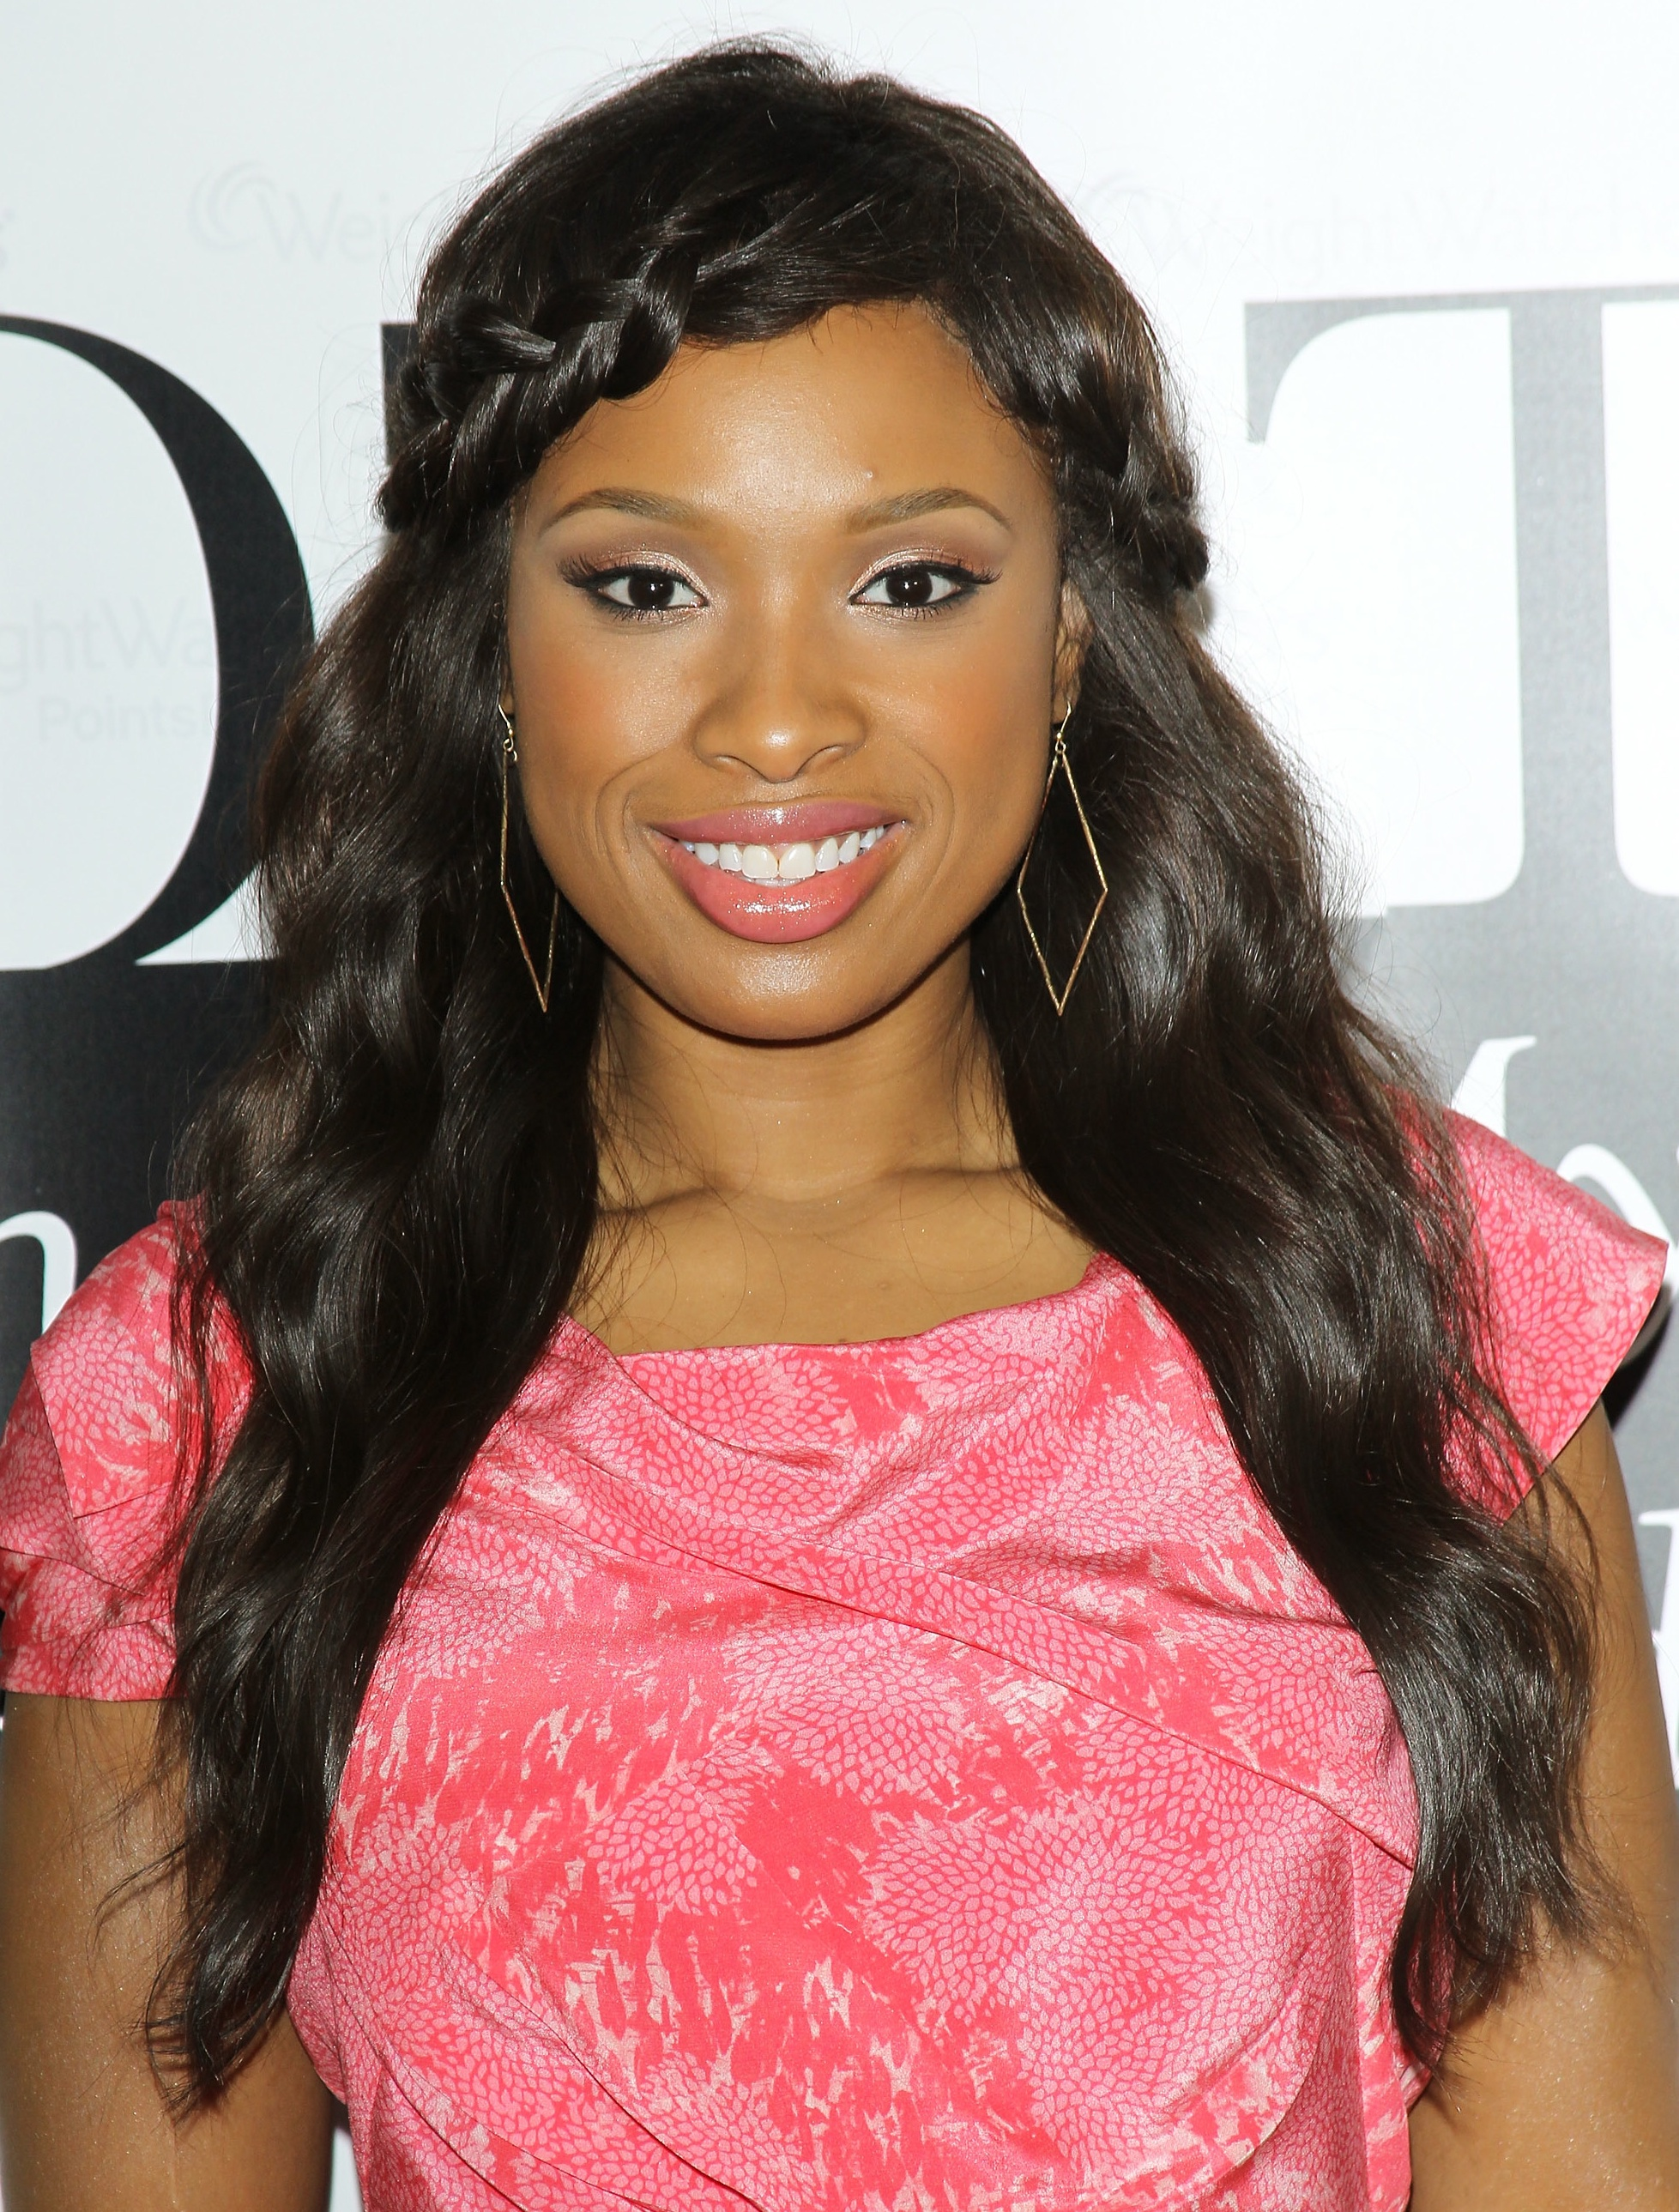 """Jennifer Hudson Signs Copies Of Her New Memoir """"I Got This"""" At Los Angeles Weight Watchers Center"""